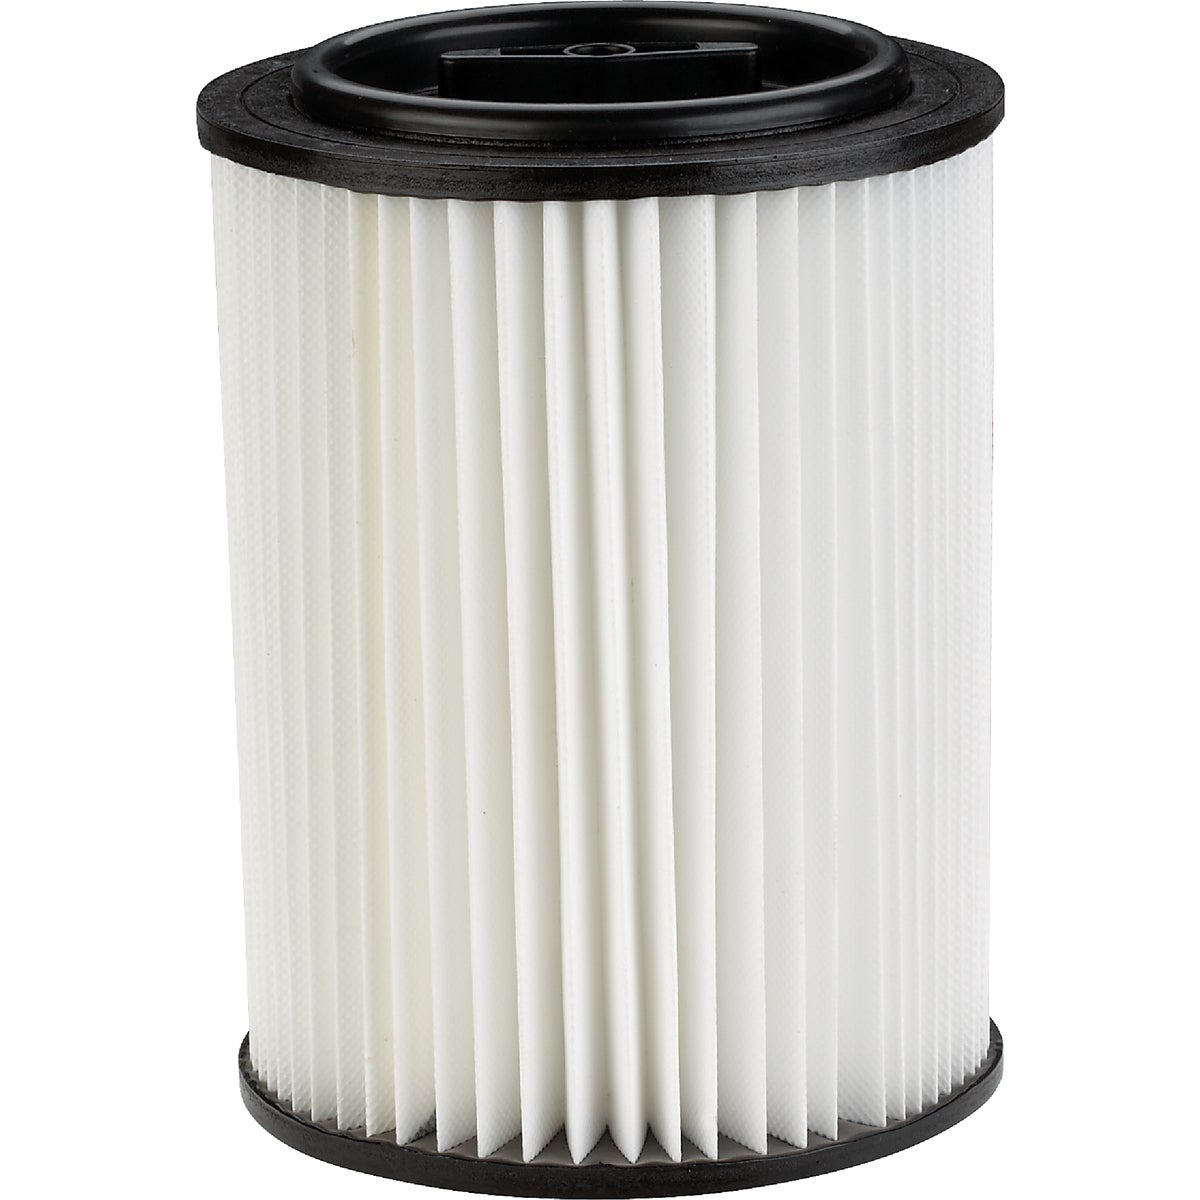 WALL MOUNT FILTER